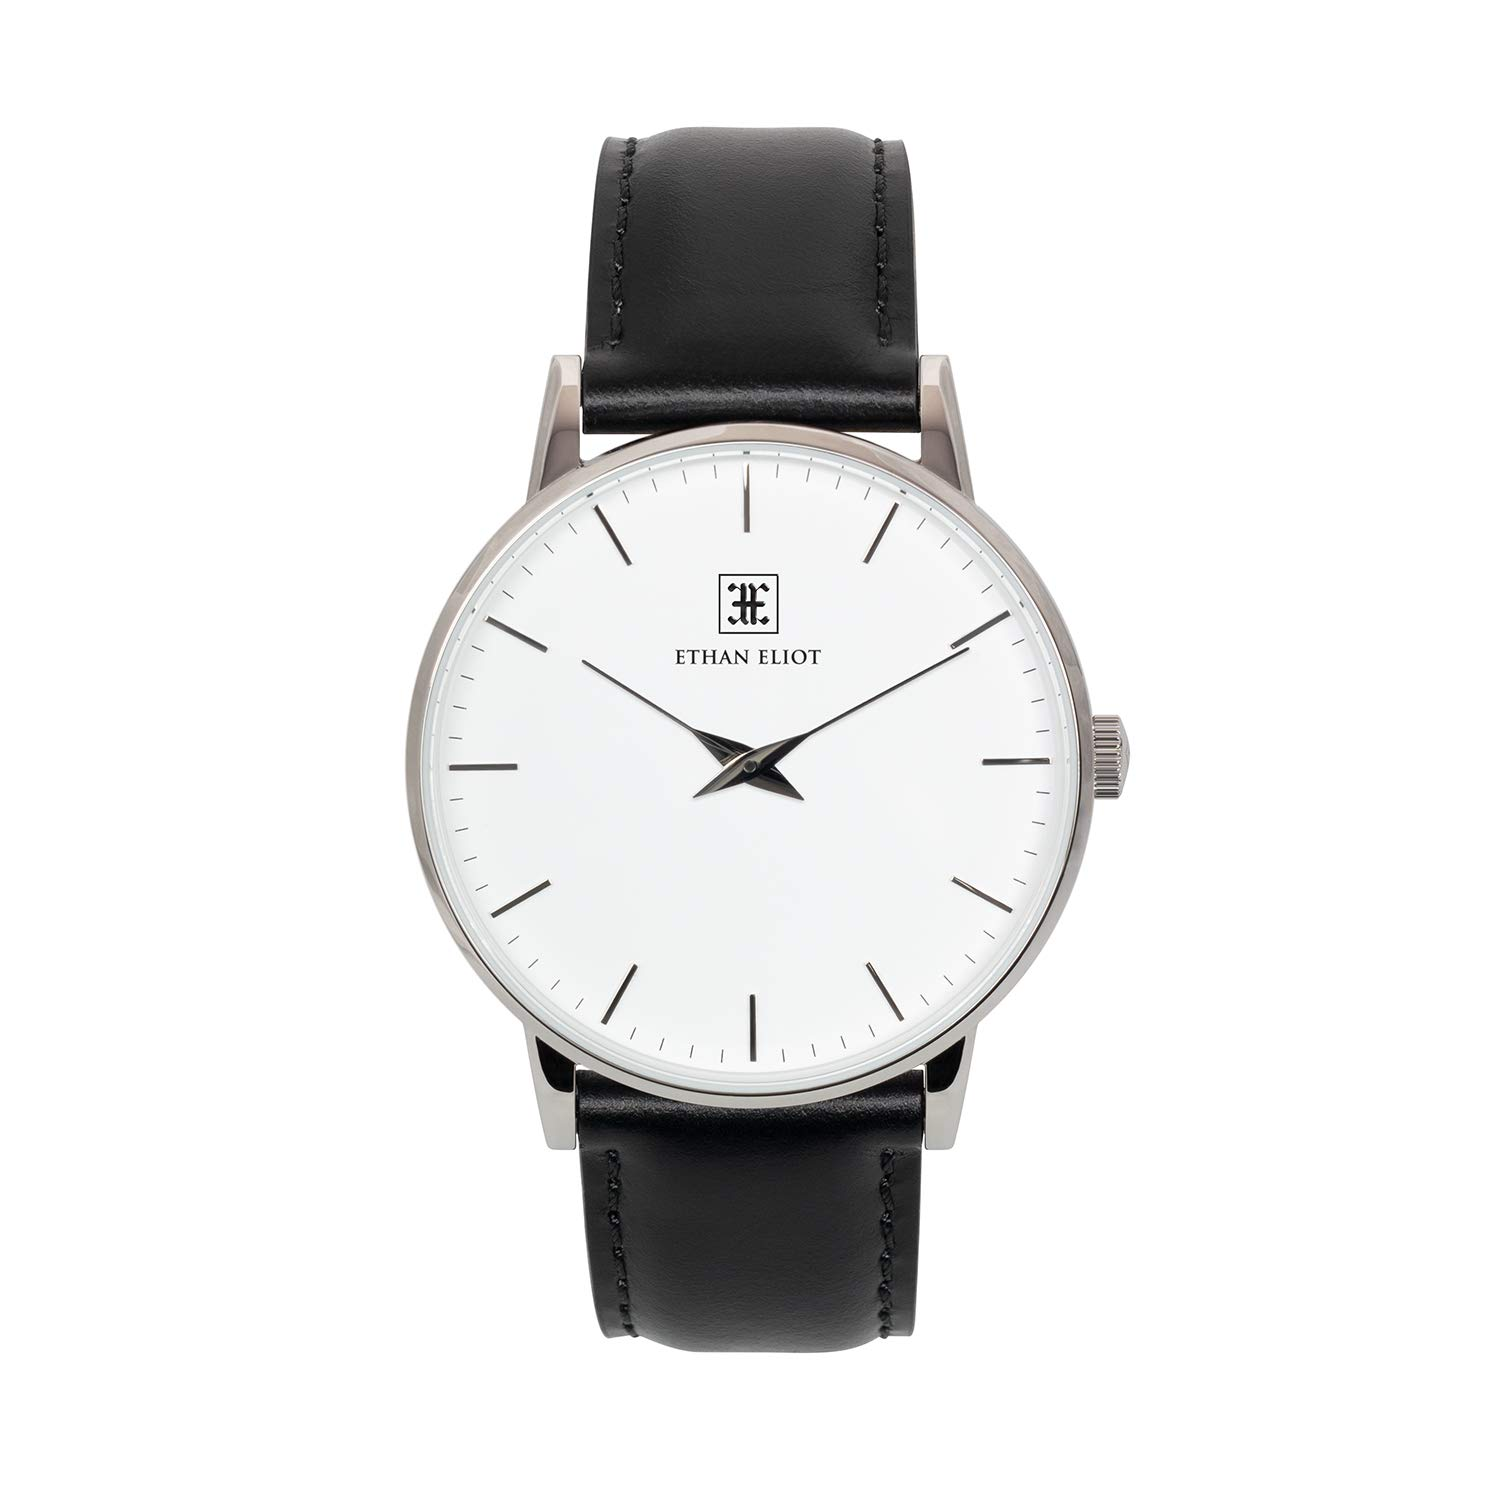 Ethan Eliot Classic Men's Watch, Oxford 40mm Silver Watch for Men, Stainless Steel Silver Case, White Face & Leather Band, 5ATM Watch